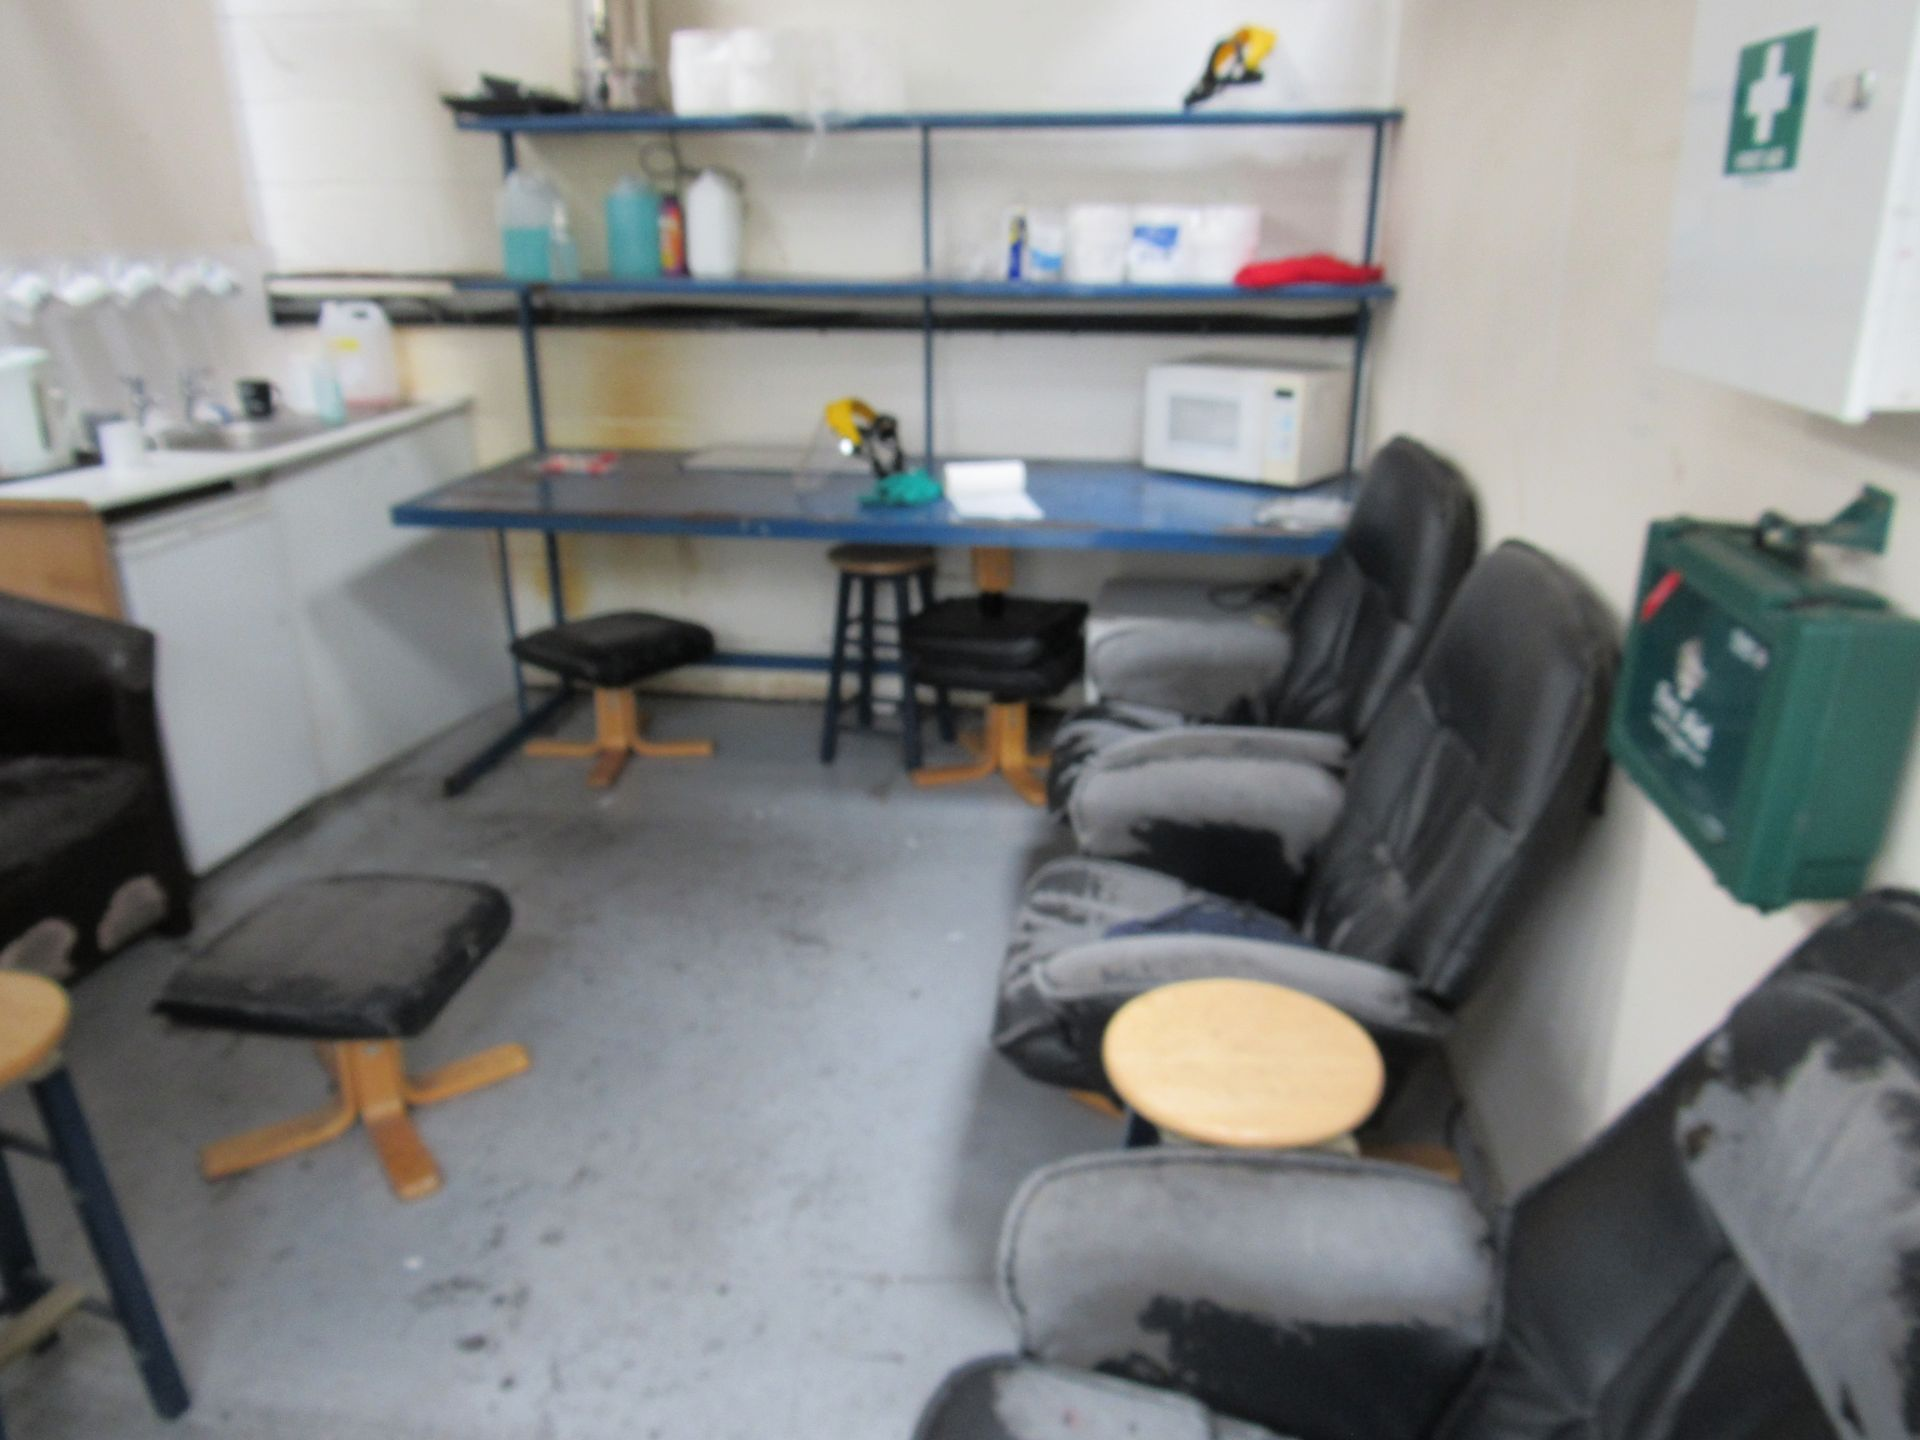 Contents to Canteen area (sink not included) - Image 2 of 3